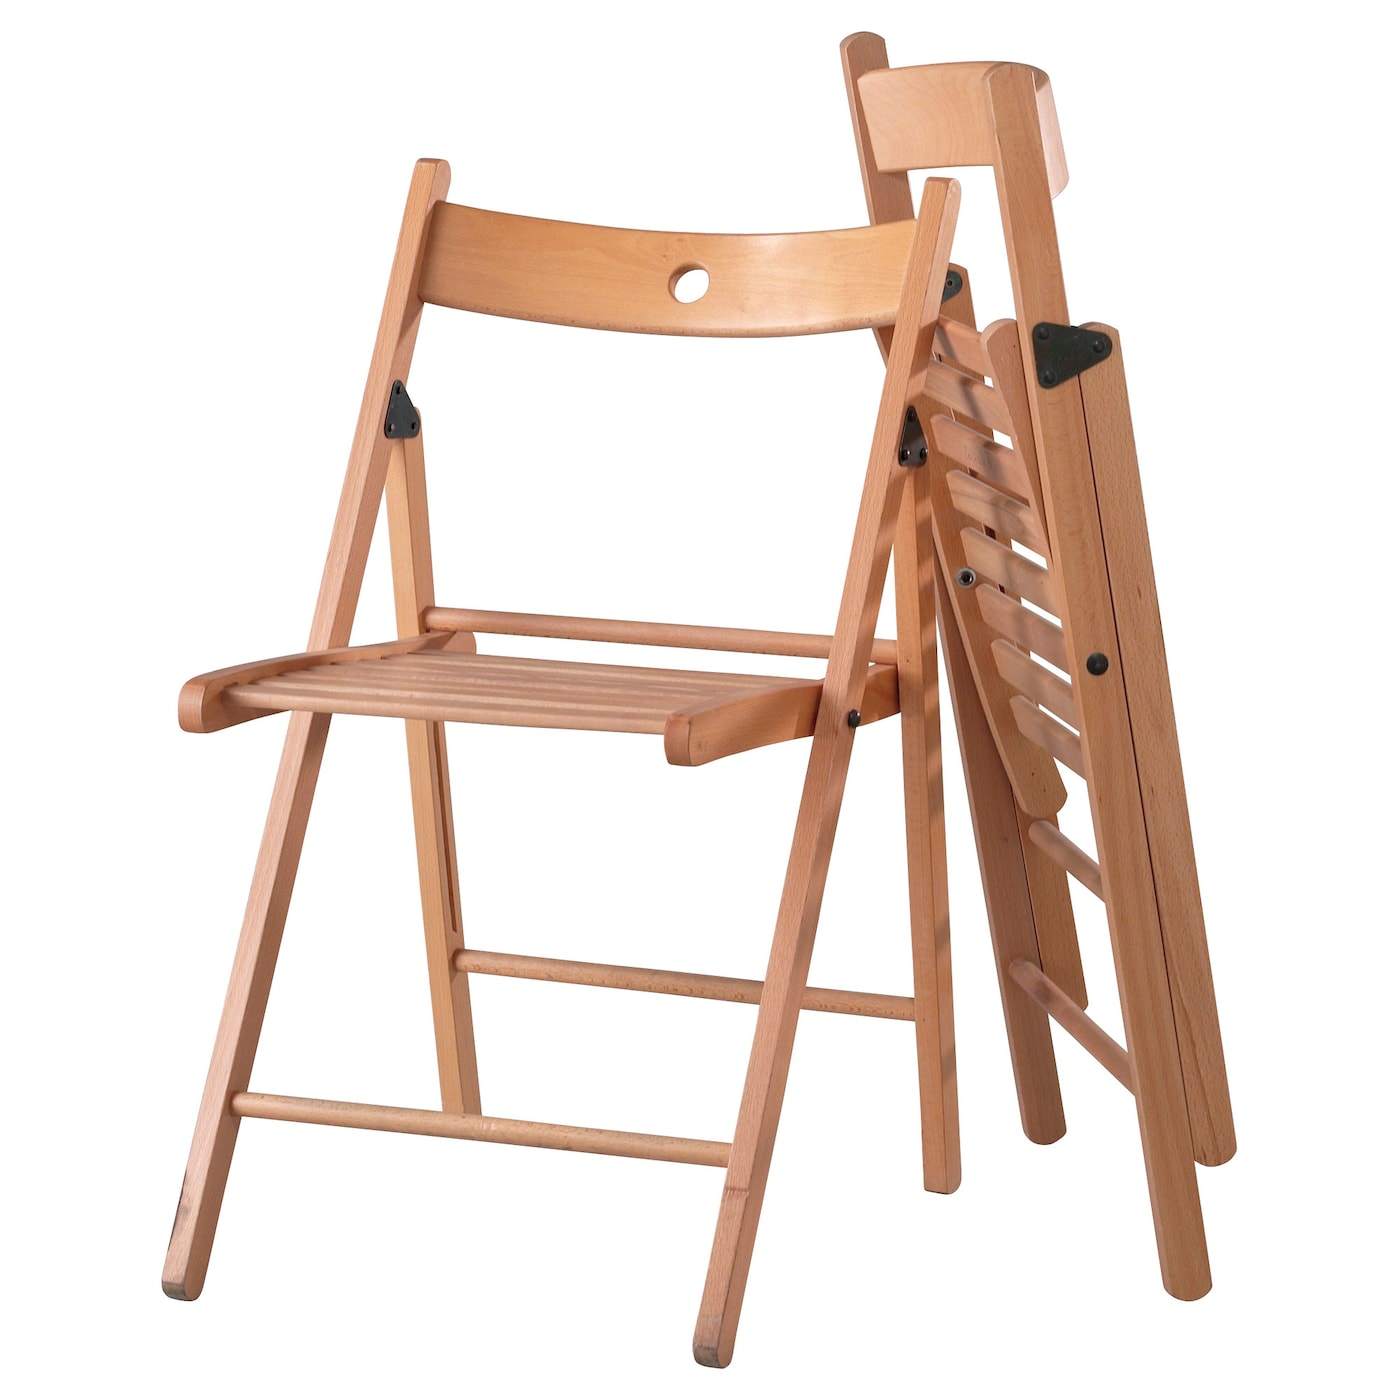 TERJE Folding chair Beech IKEA